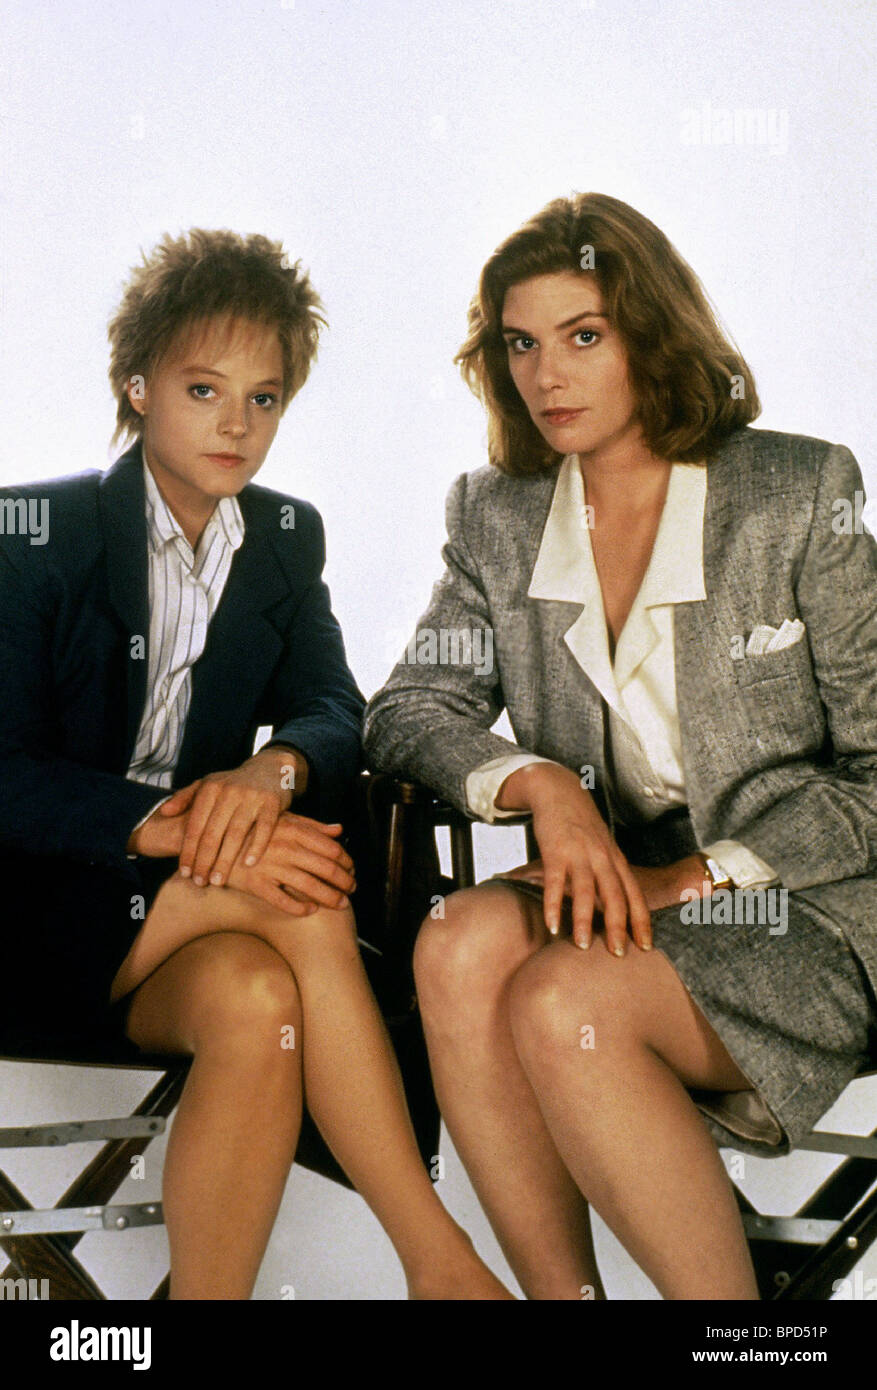 jodie foster kelly mcgillis the accused 1988 stock photo jodie foster kelly mcgillis the accused 1988